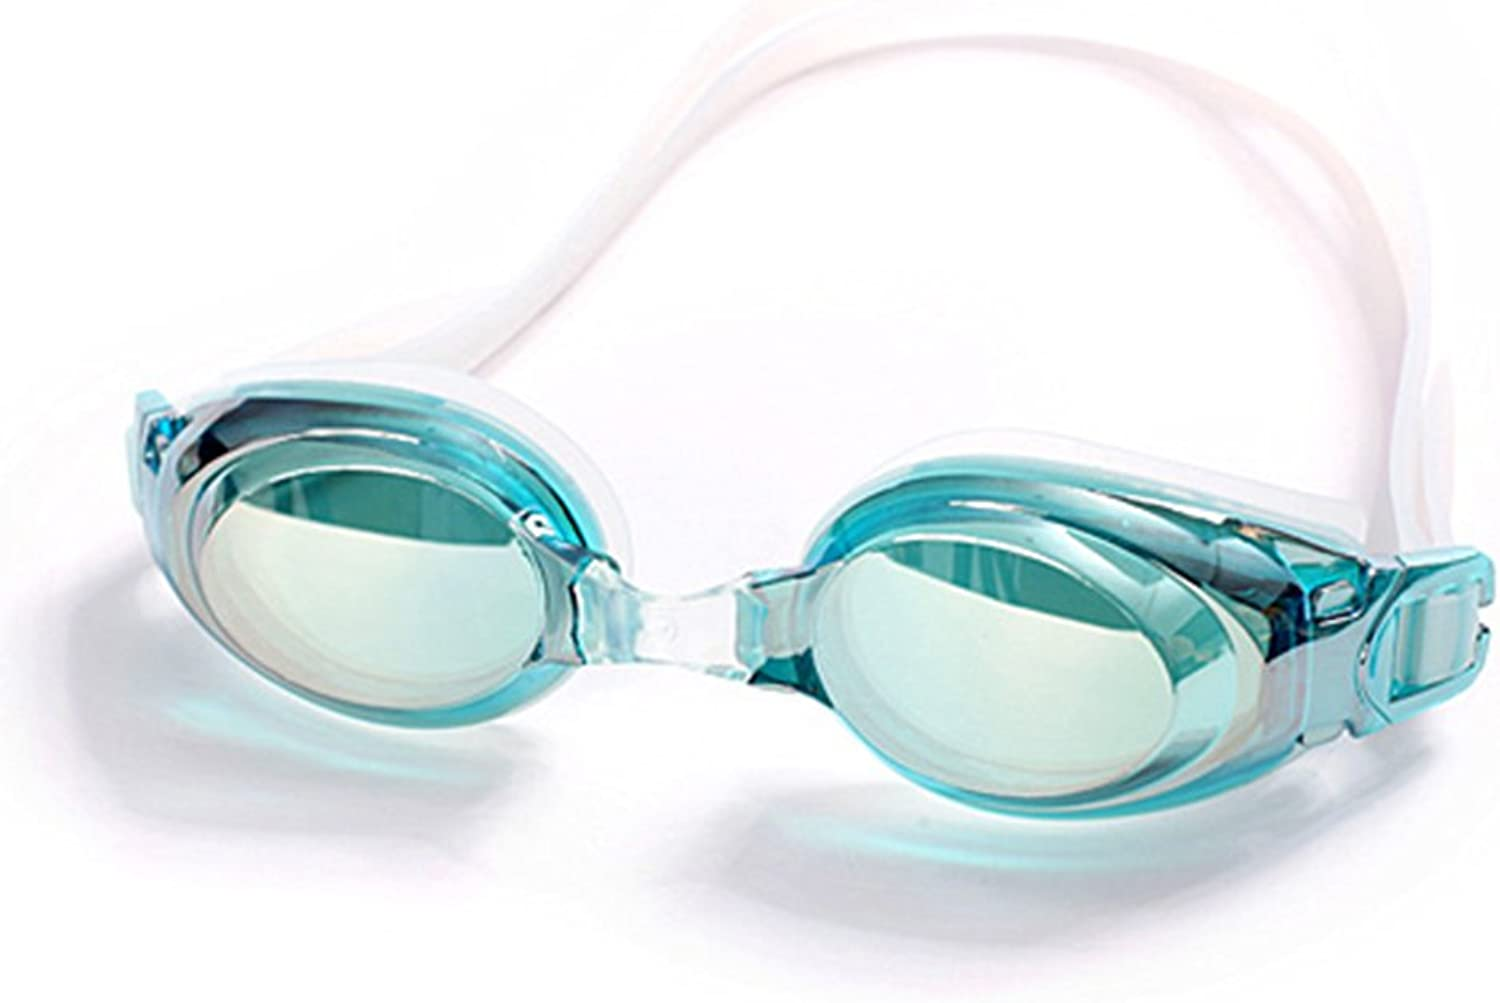 Swim Goggles for Women Girls with Nose Clips and Ear Plugs, Anti Fog UV Predection No Leaking Swimming Goggles for Beach Pool